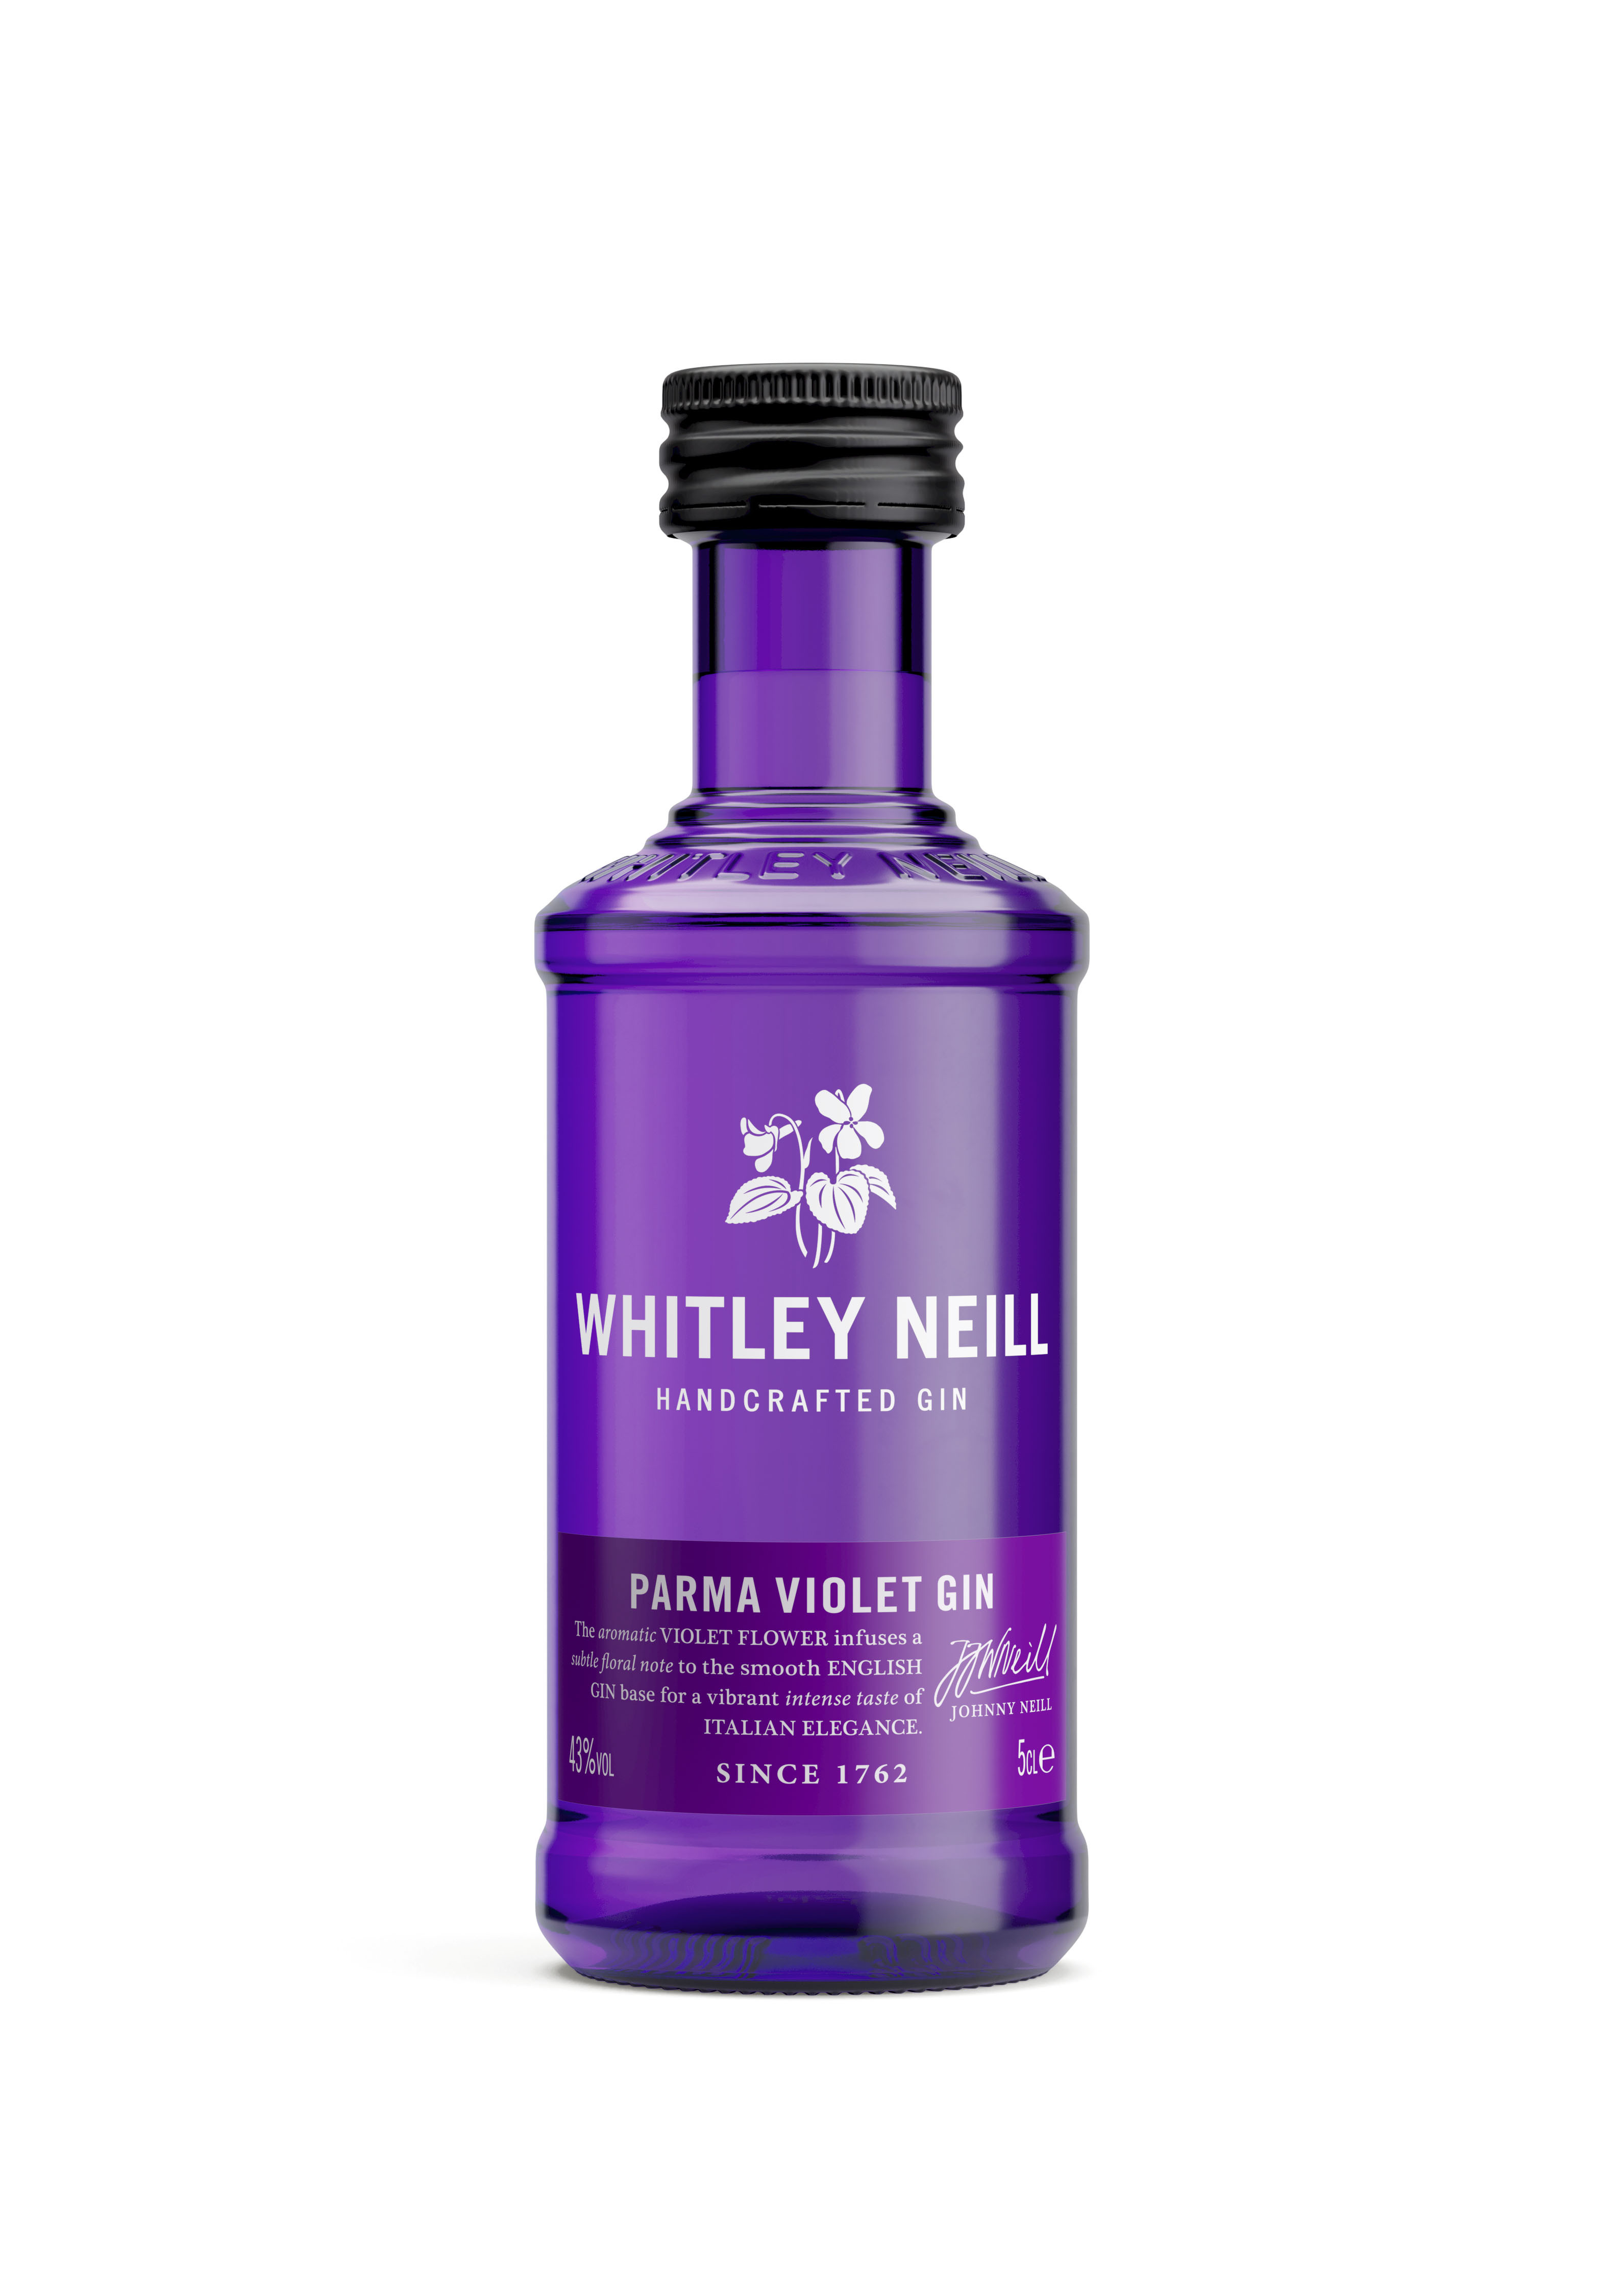 Whitley Neill Parma Violet Gin Miniature 5cl